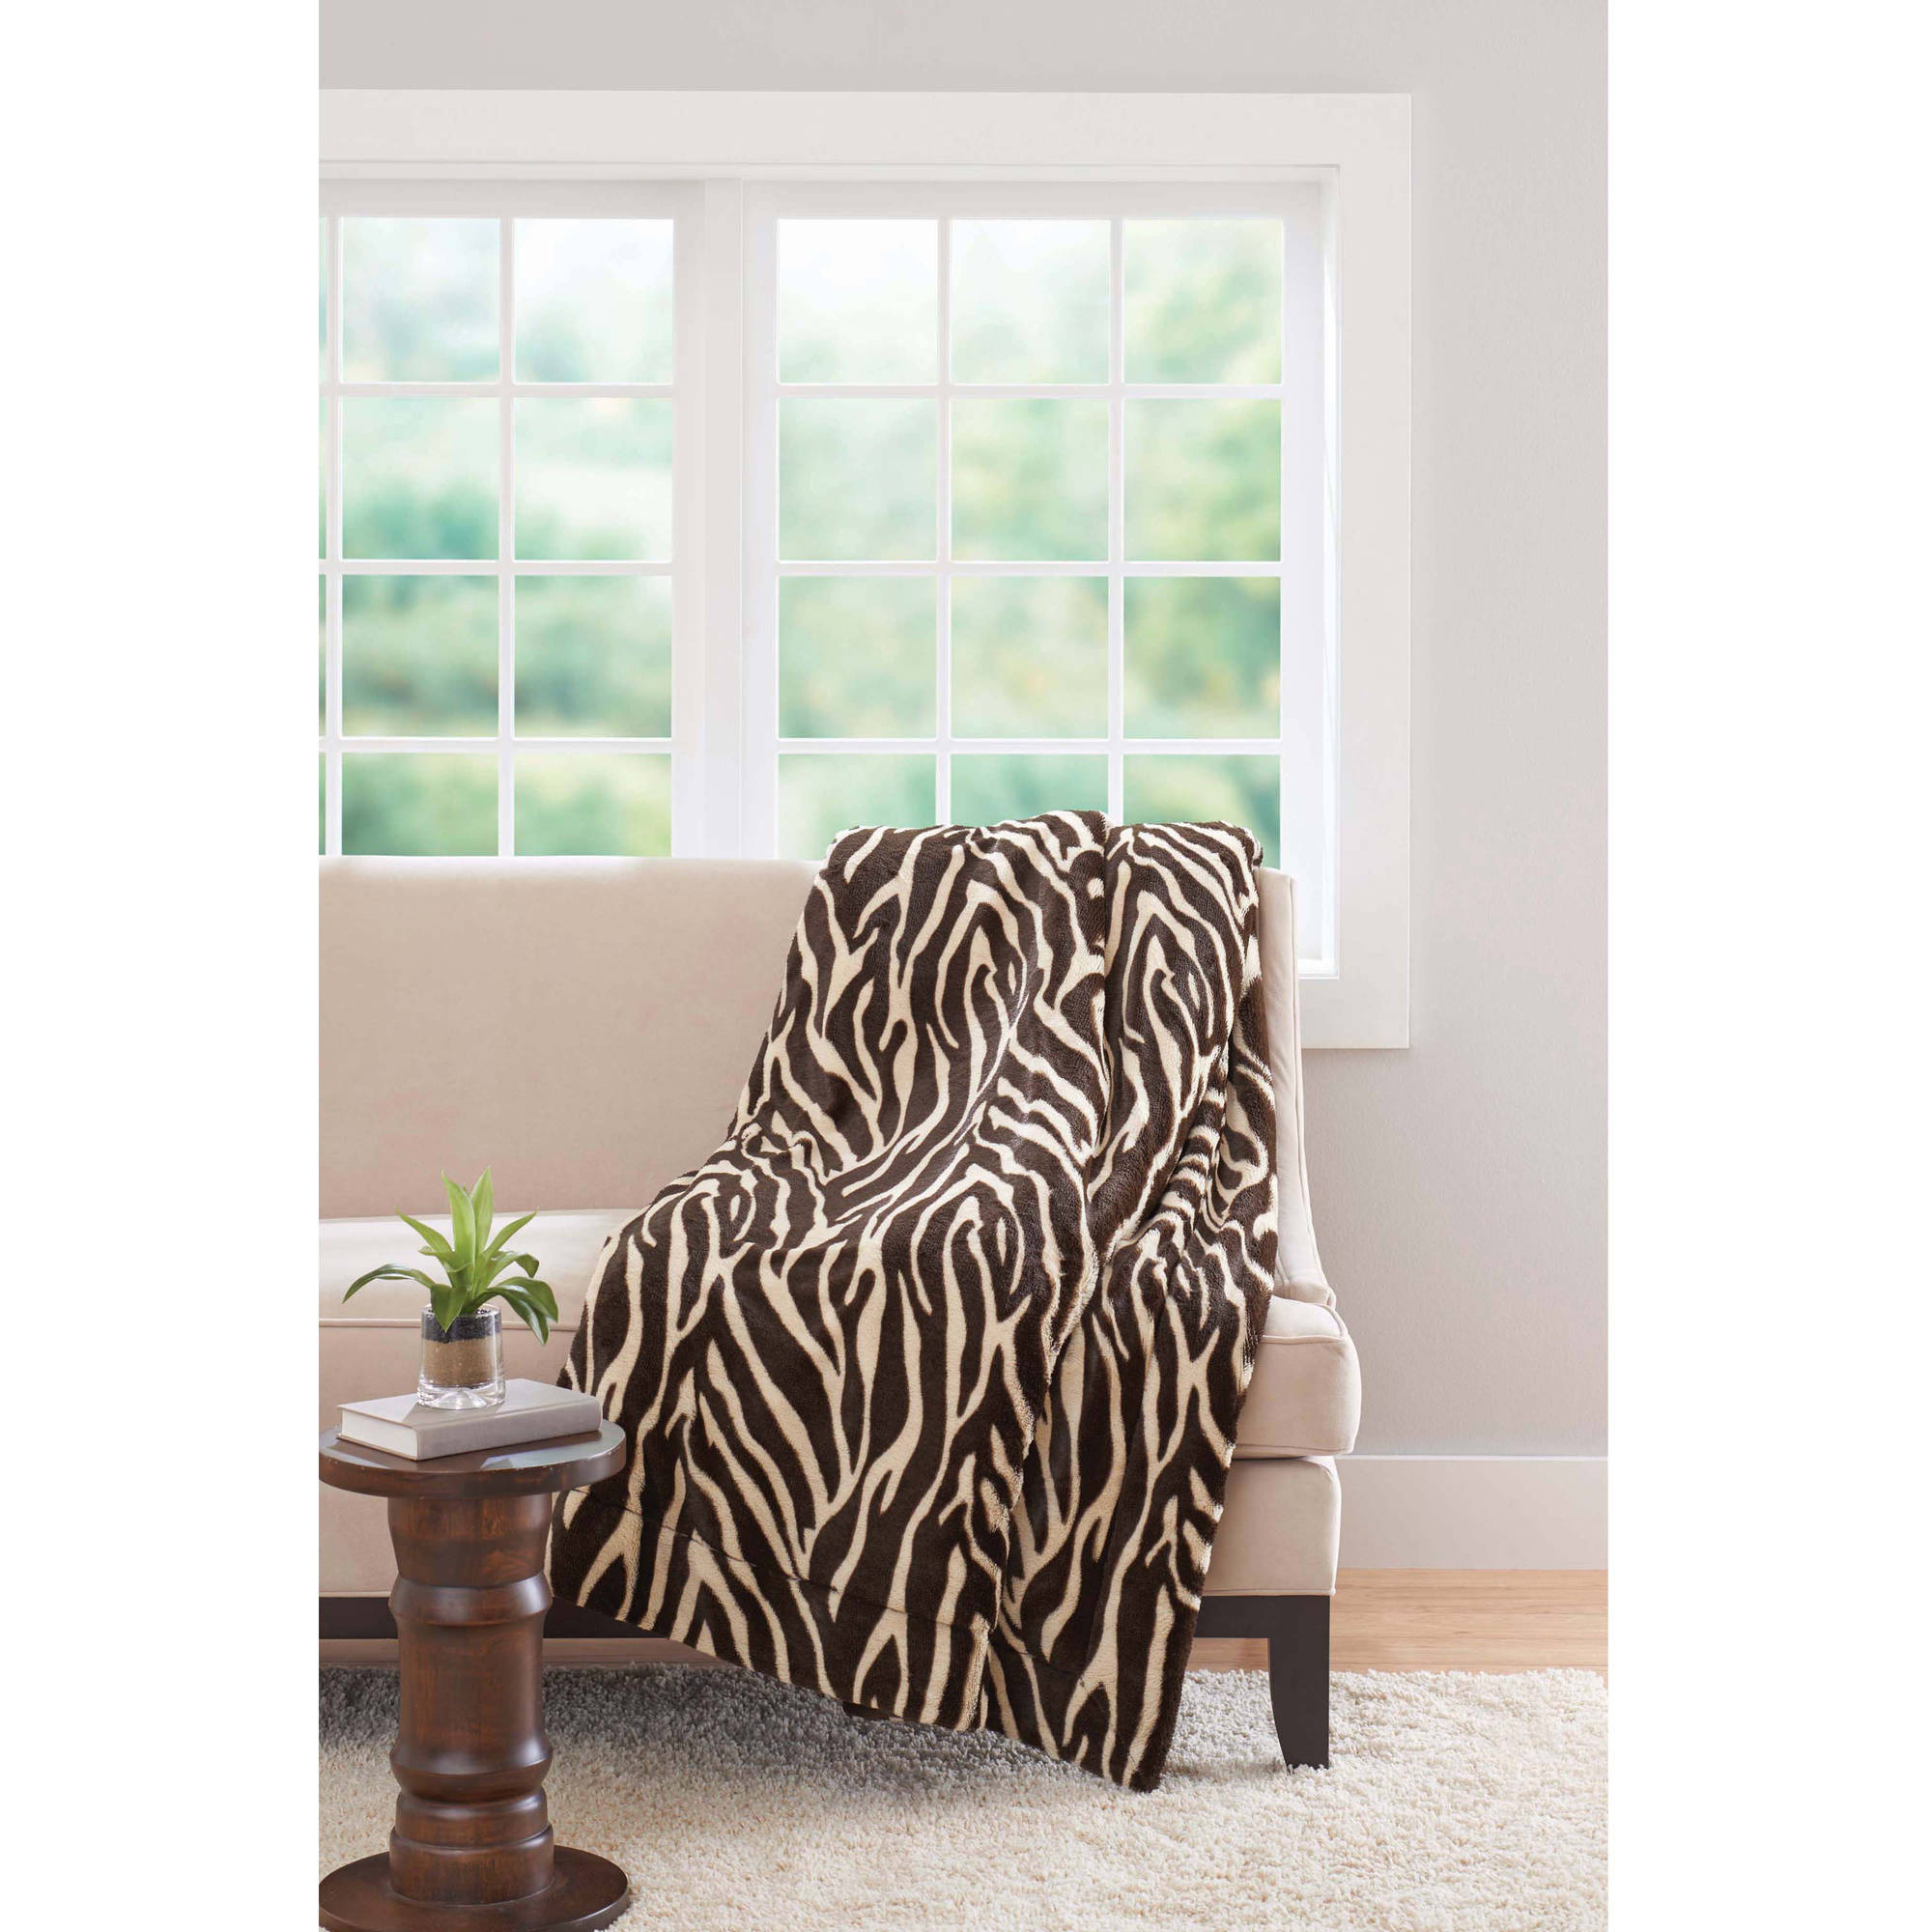 "Better Homes and Gardens 50"" x 60"" Faux Fur Throw"